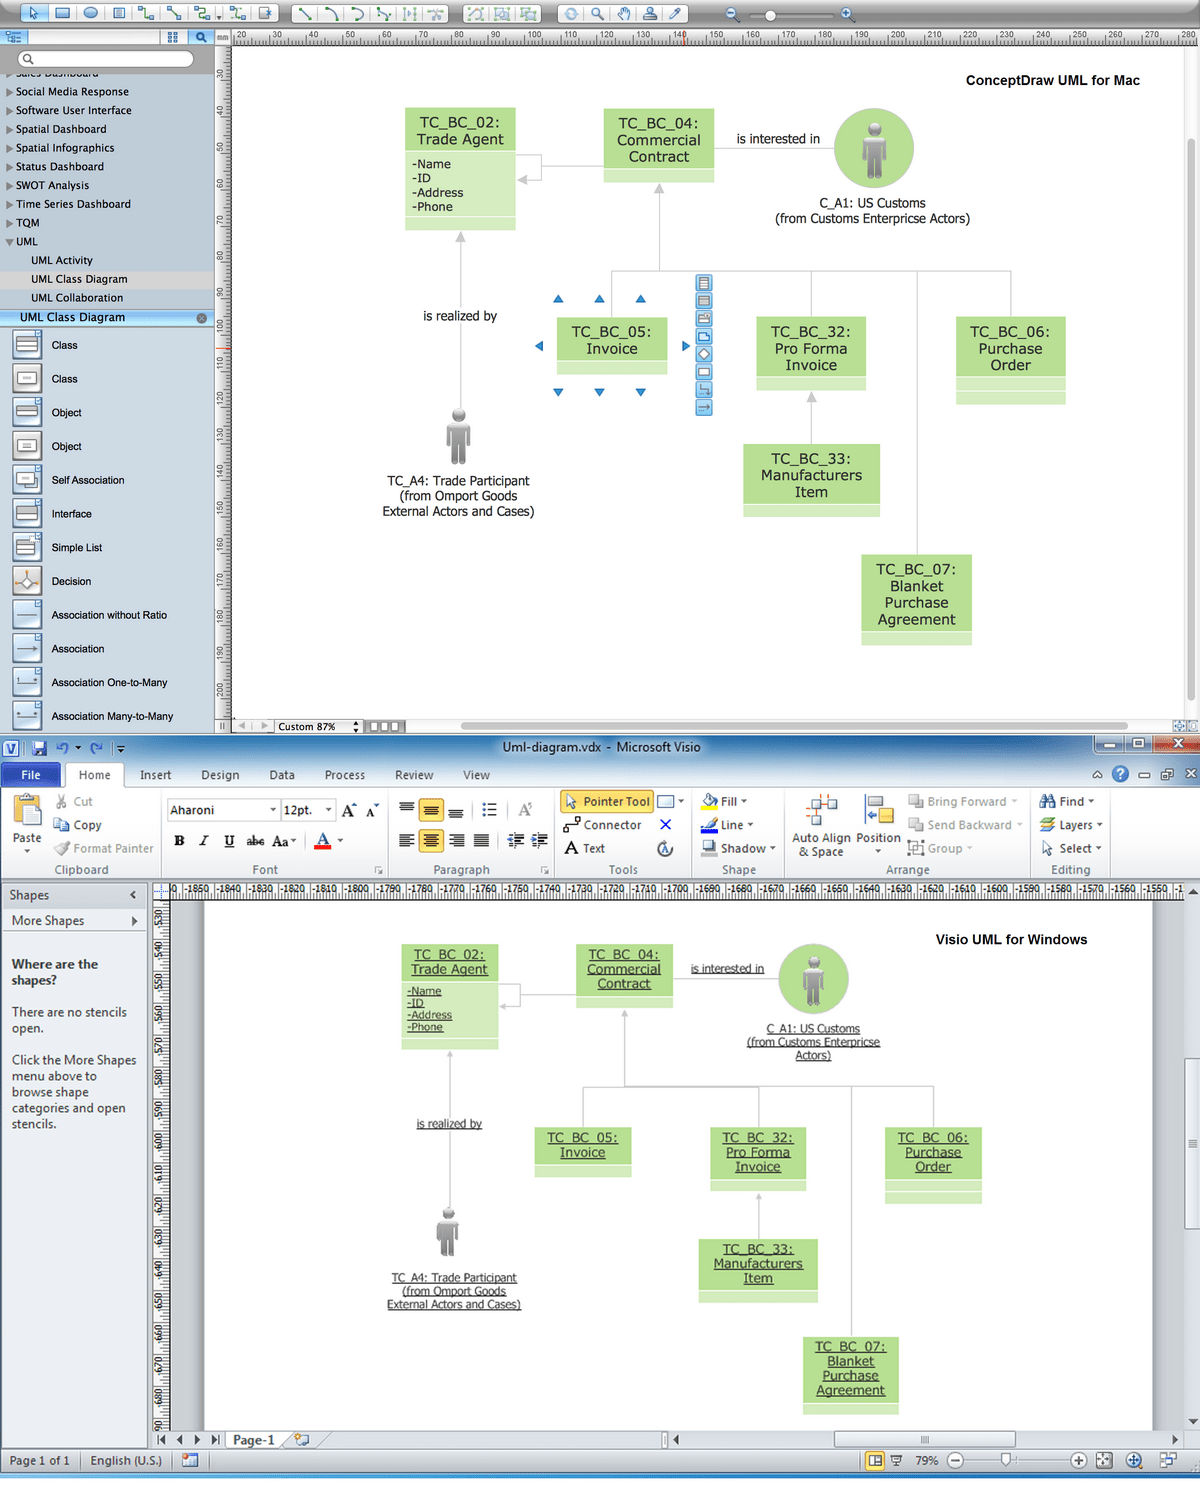 visio sequence diagram library ideas uml